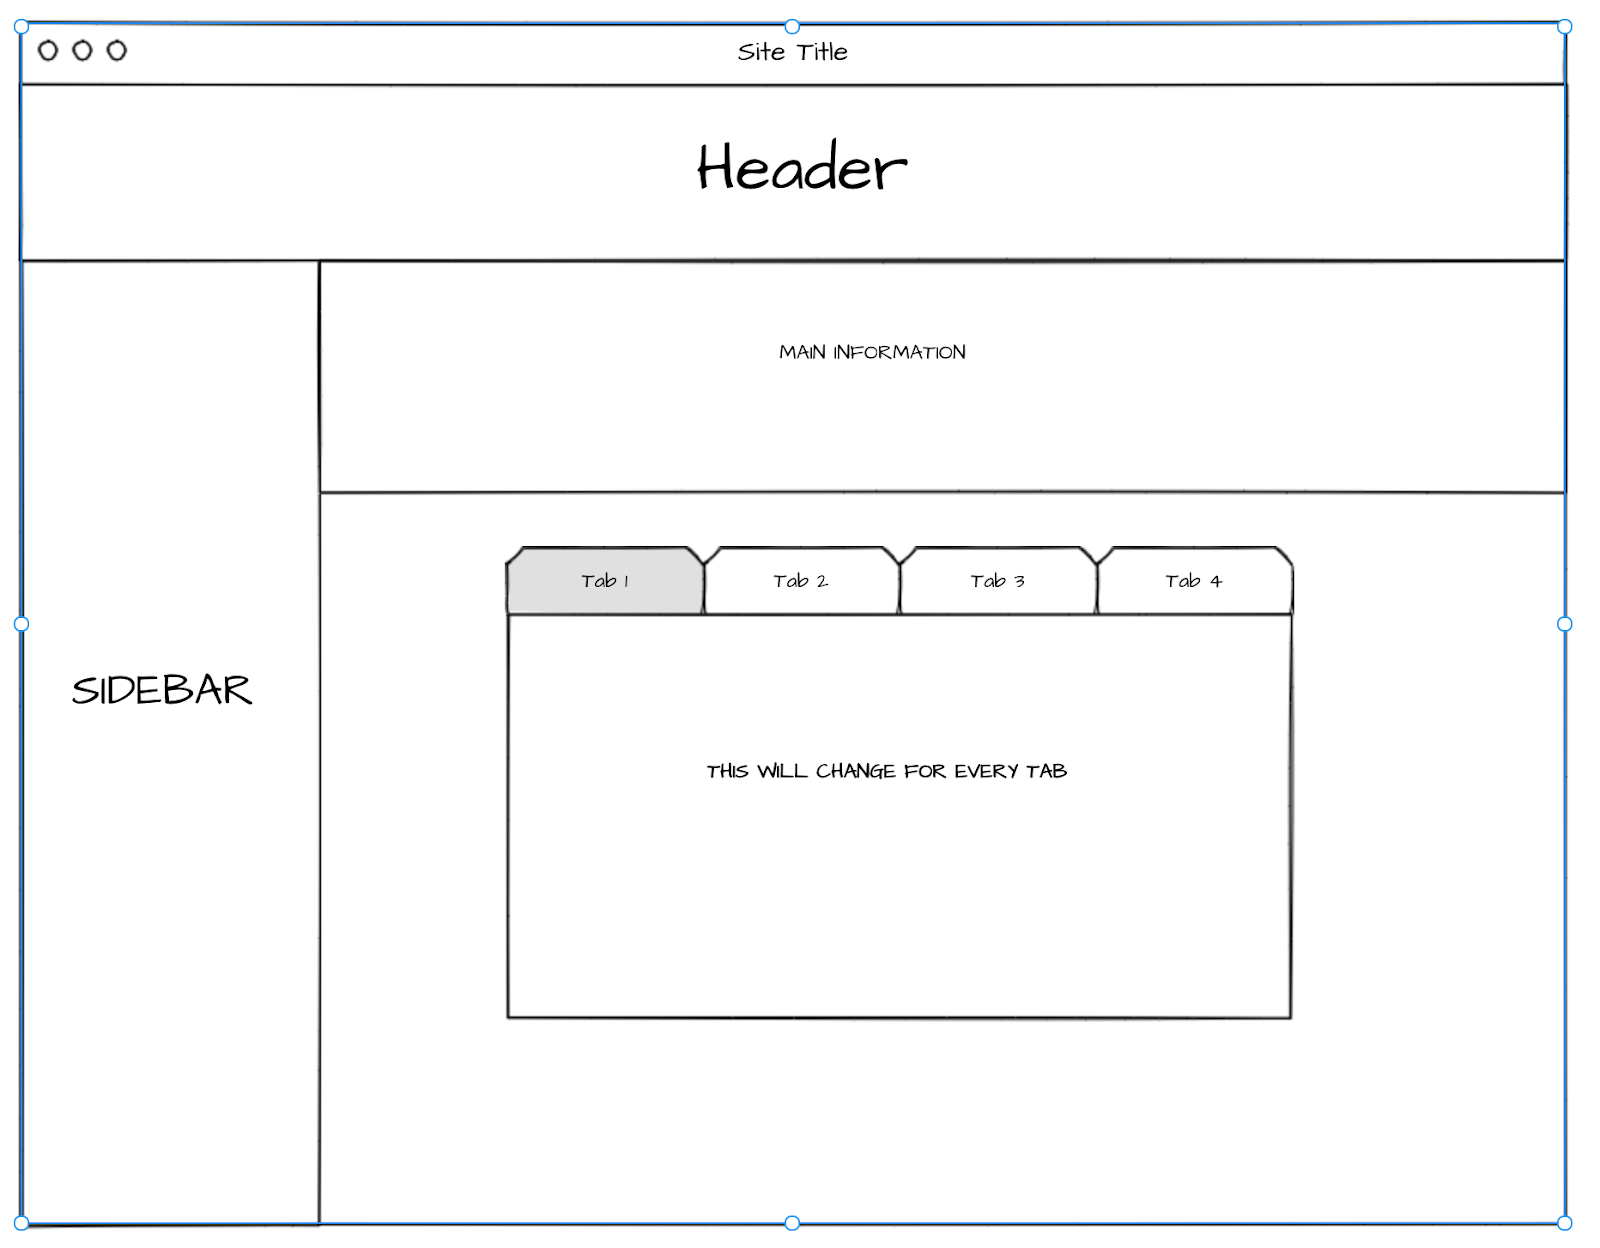 Example of a Single Page Application with Header, Sidebar, and multiple tabs.